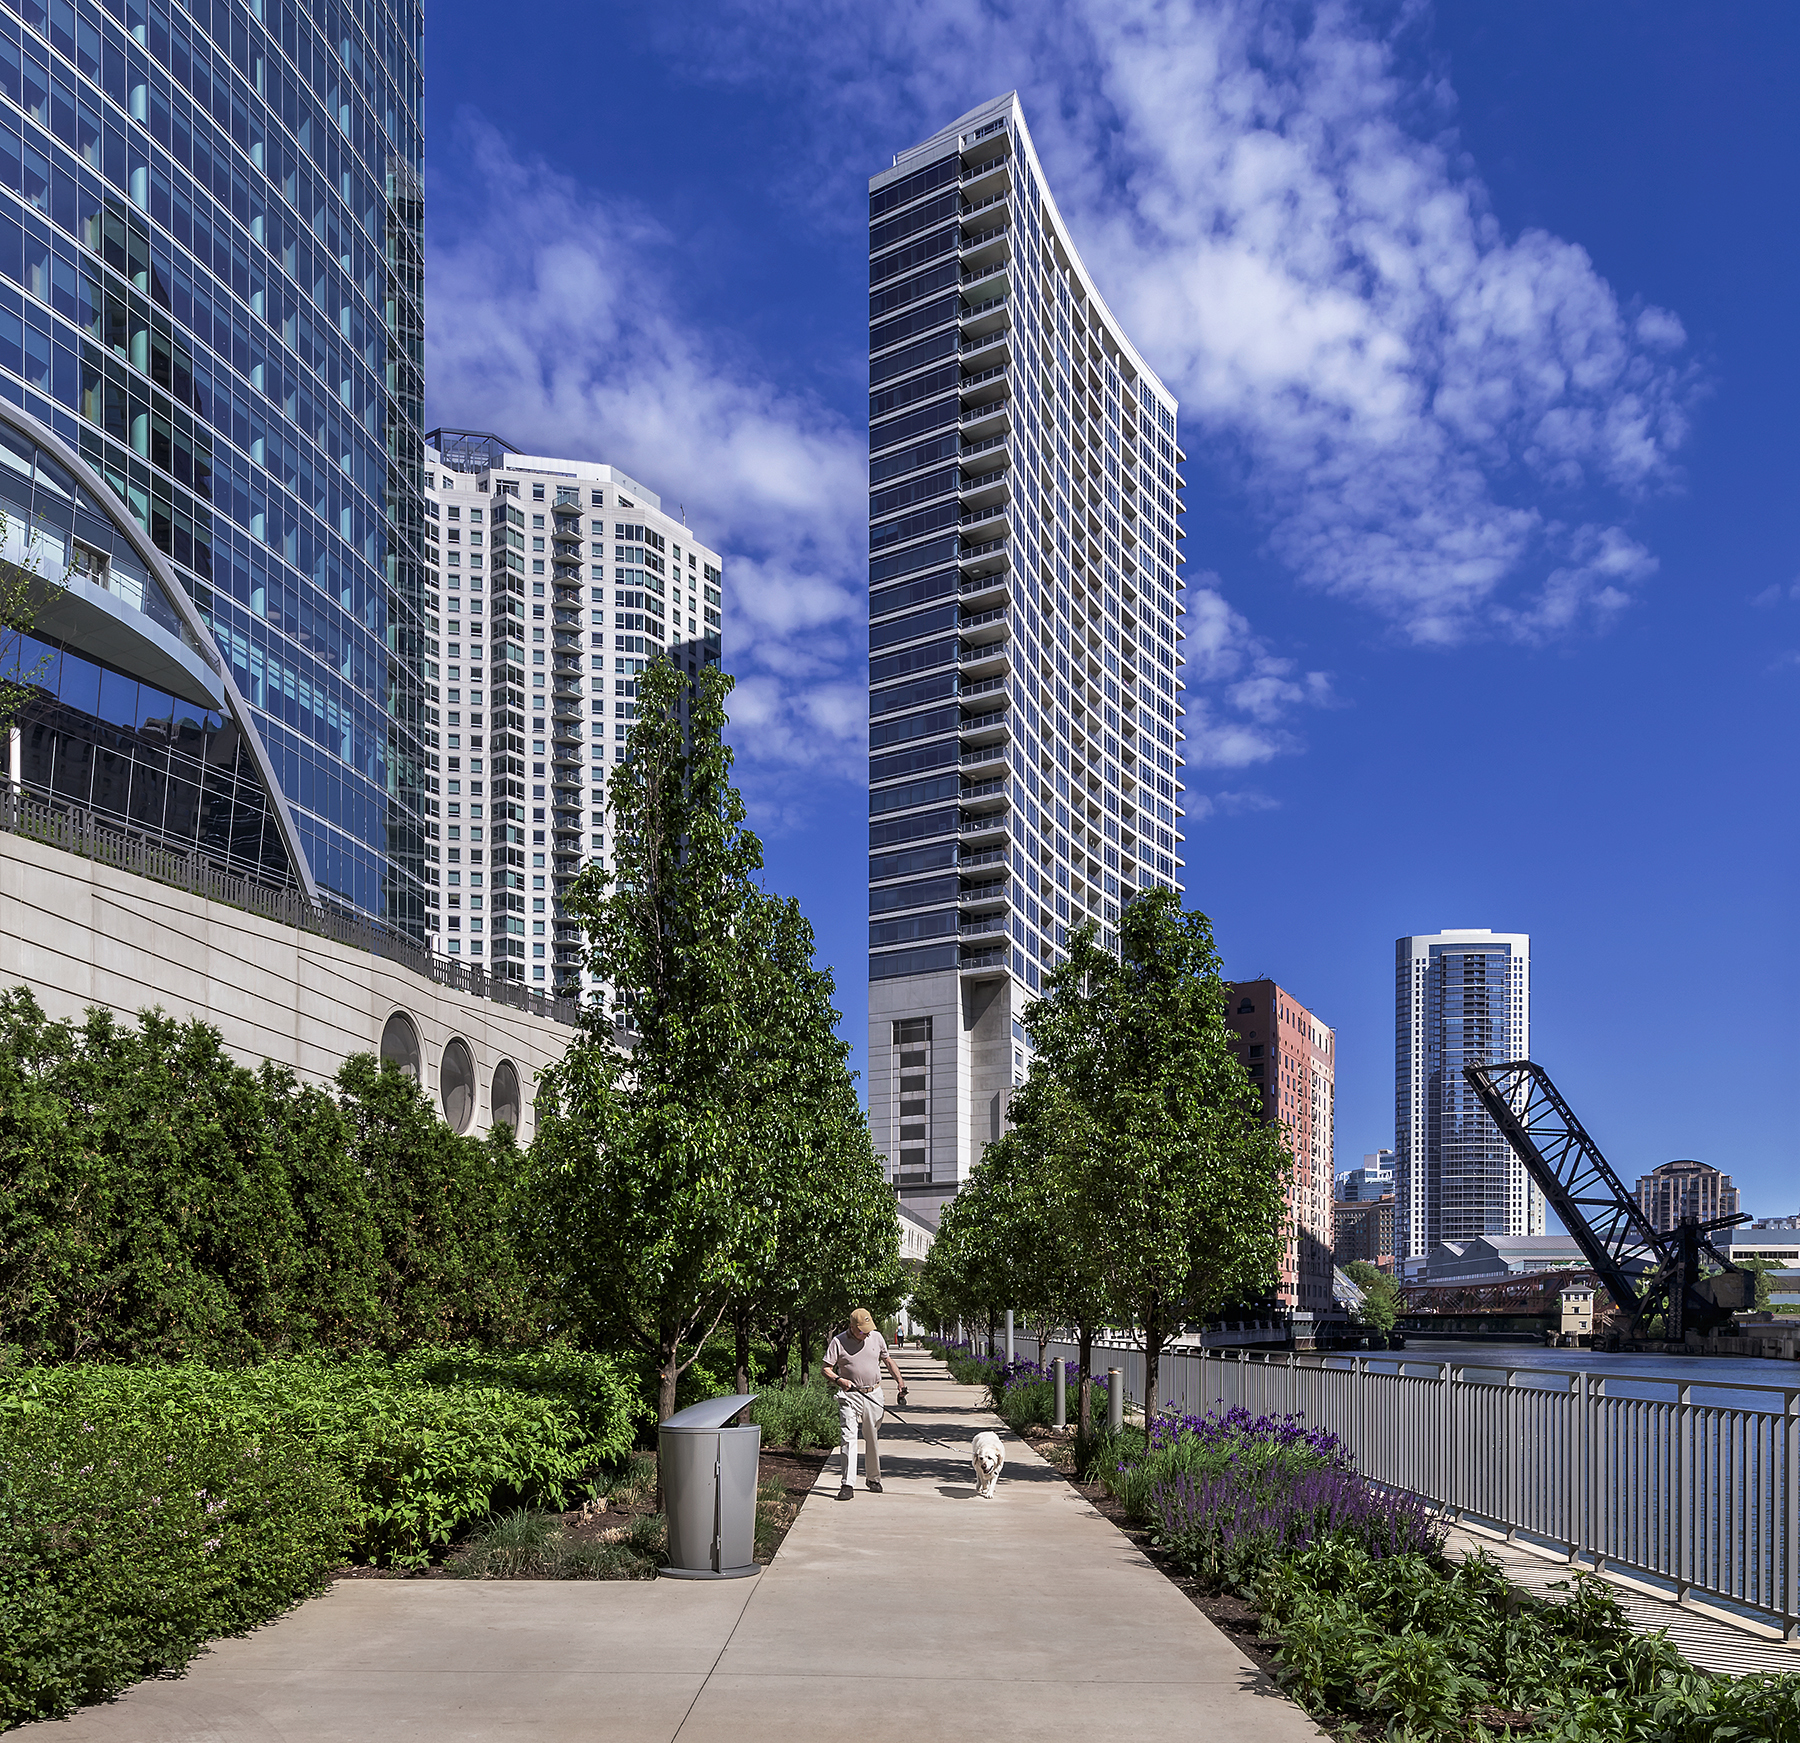 River_Point_Chicago_Illinois_Riverwalk05